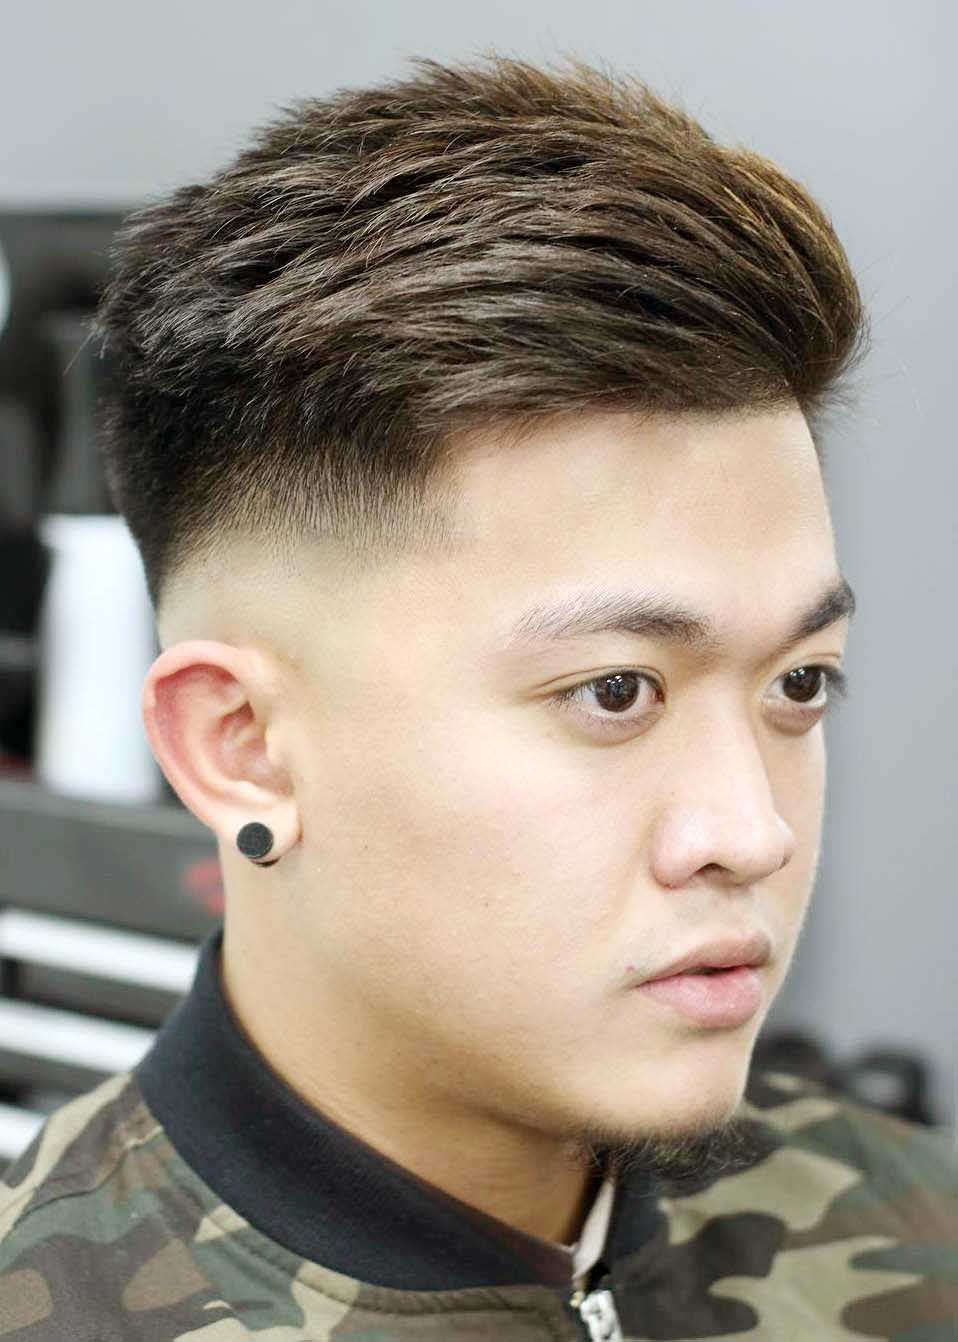 Popular Asian Men Hairstyles trends in 2020 updated